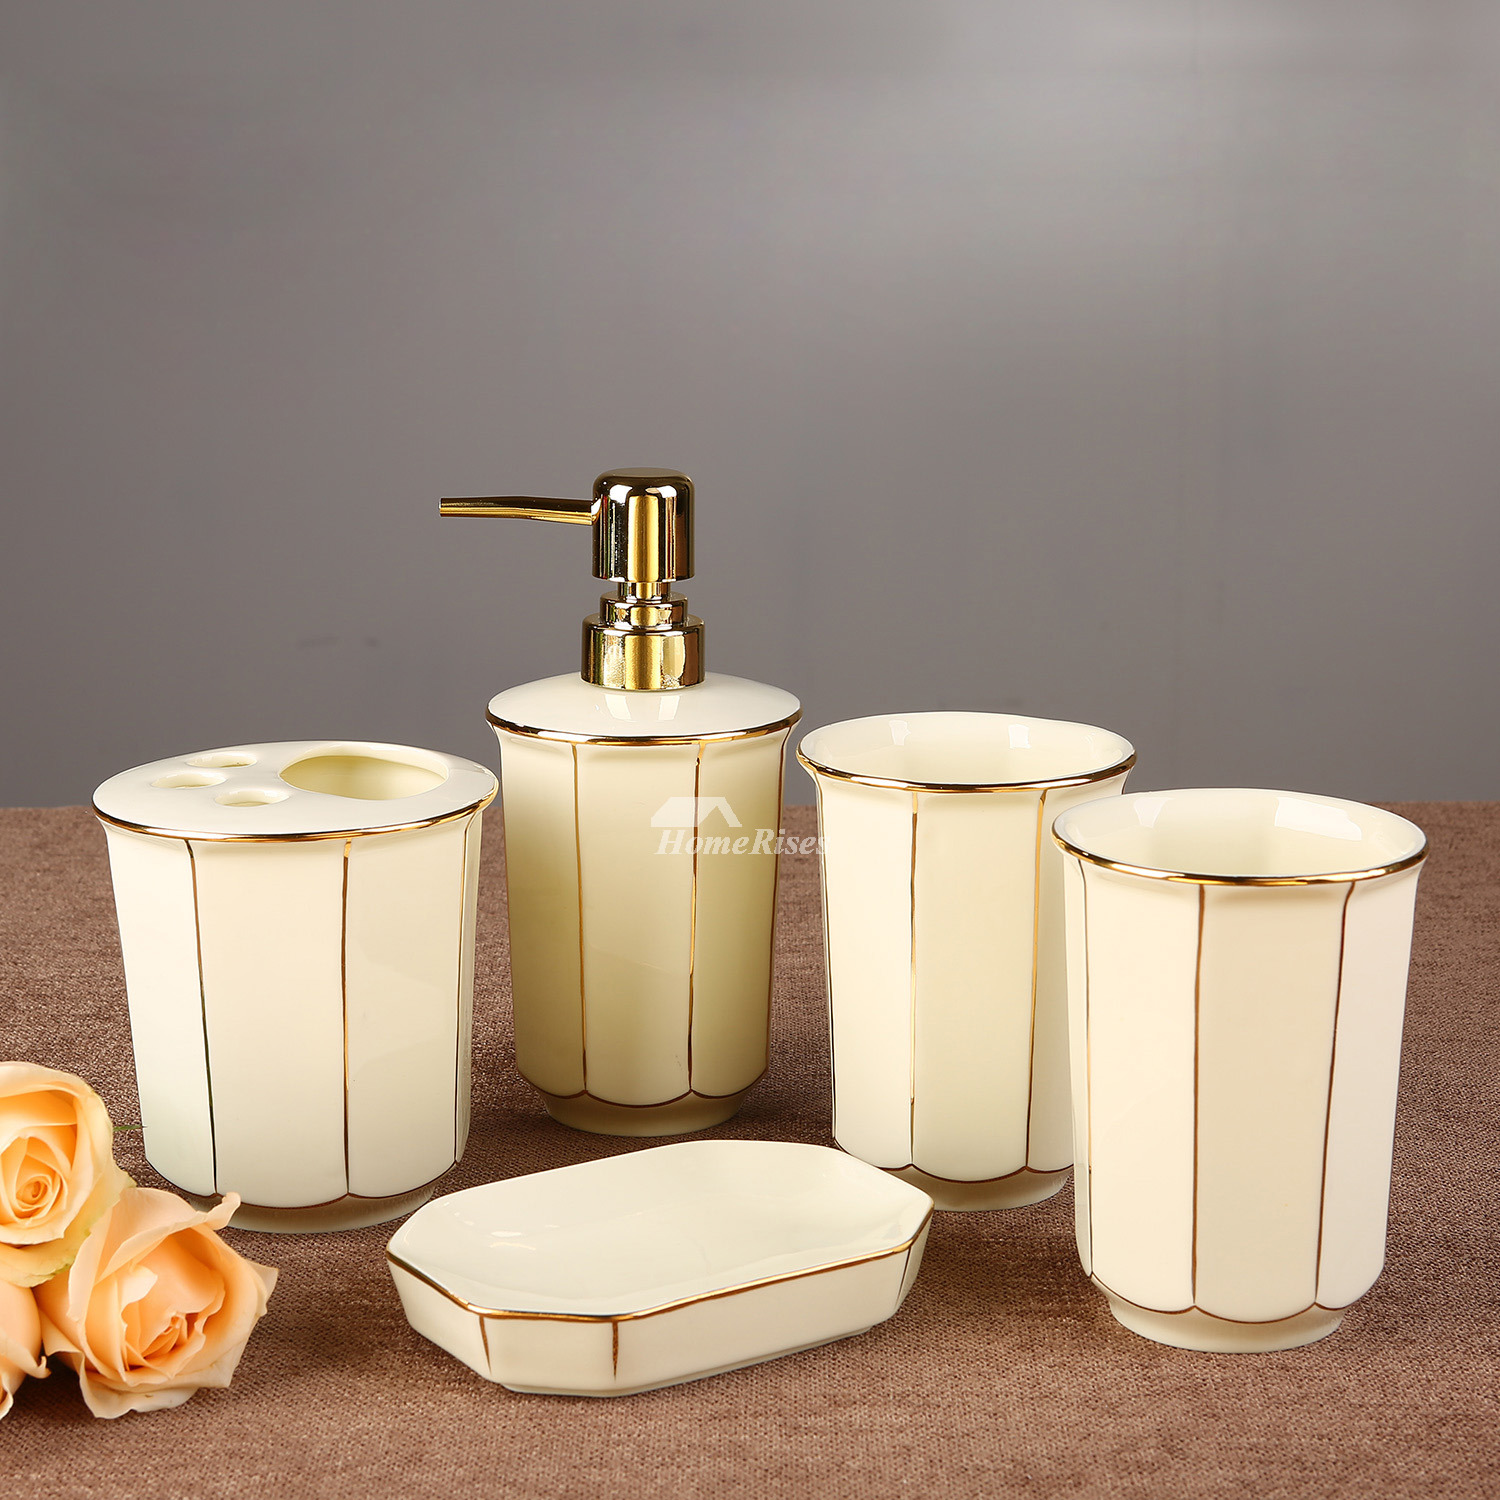 5-Piece Floral Bathroom Accessories Set Ceramic Floral Enamel